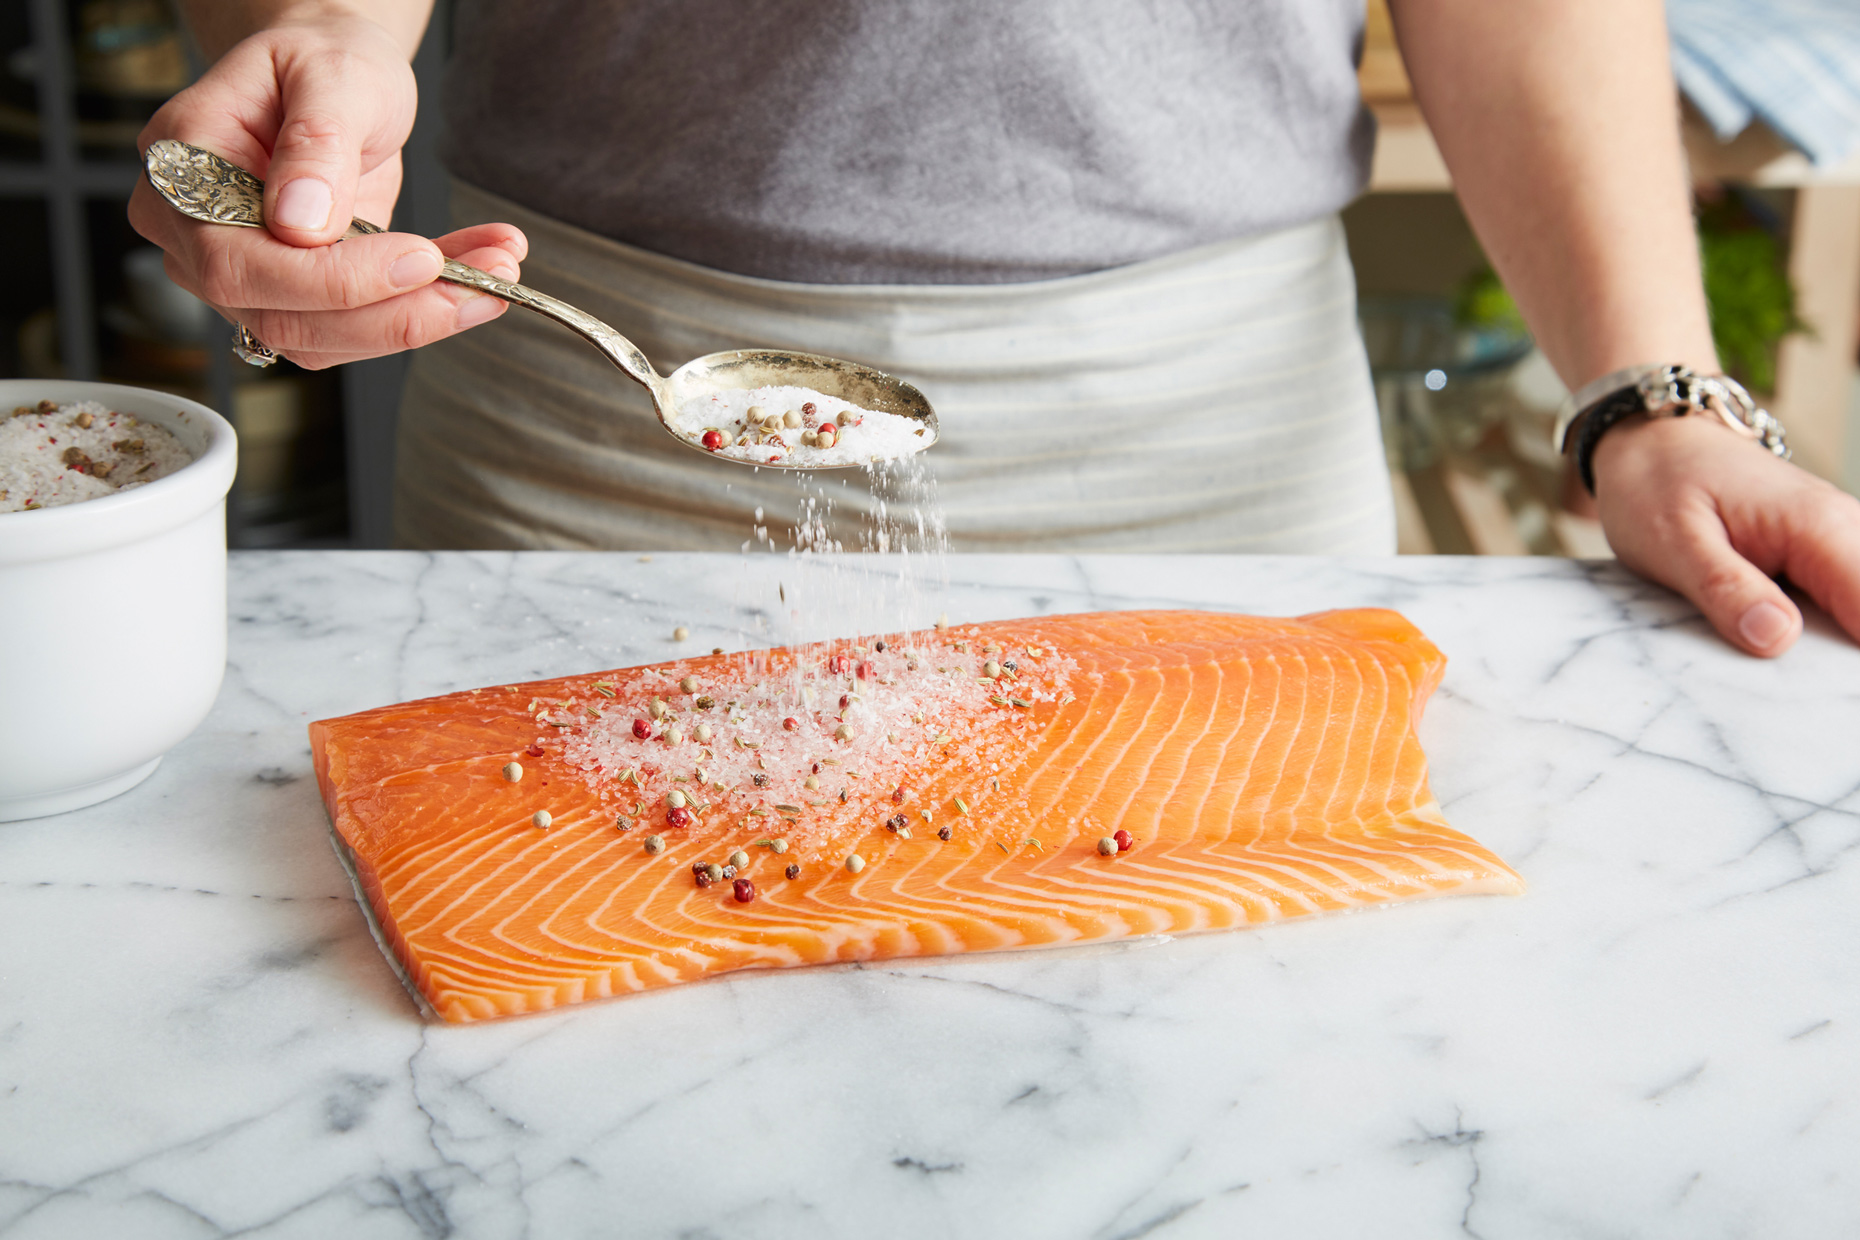 Cured Gravlax, Salmon, cured food. photo by Chris Kessler Photography.  Chris Kessler is a freelance Photographer based in Milwaukee Wisconsin. Specializing in Food photography and portraiture.